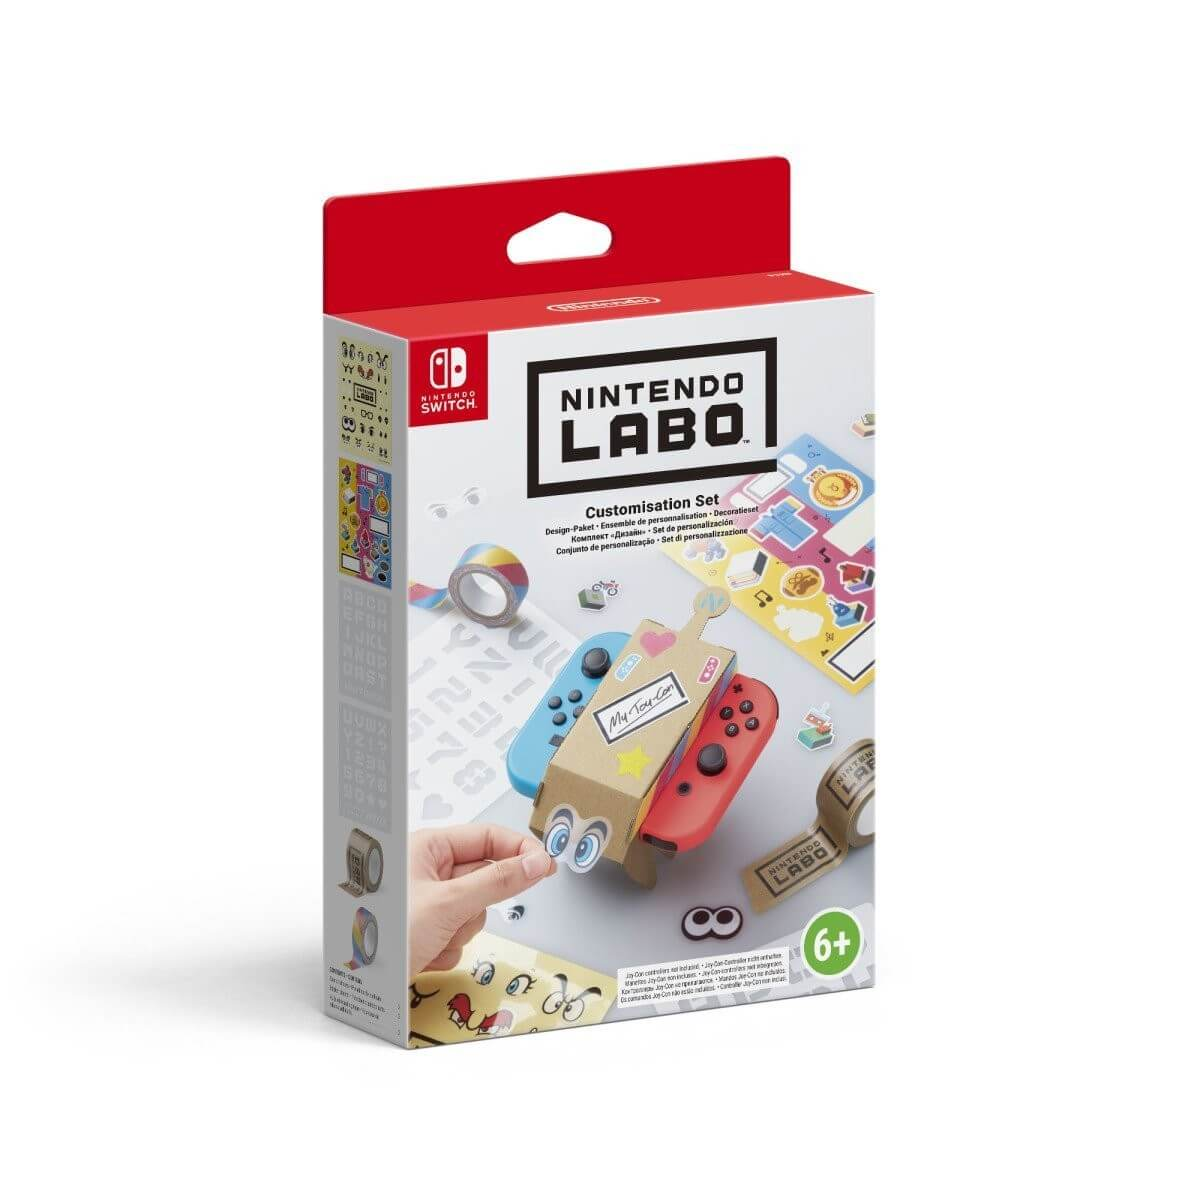 Nintendo Labo: Customisation Set XBOX